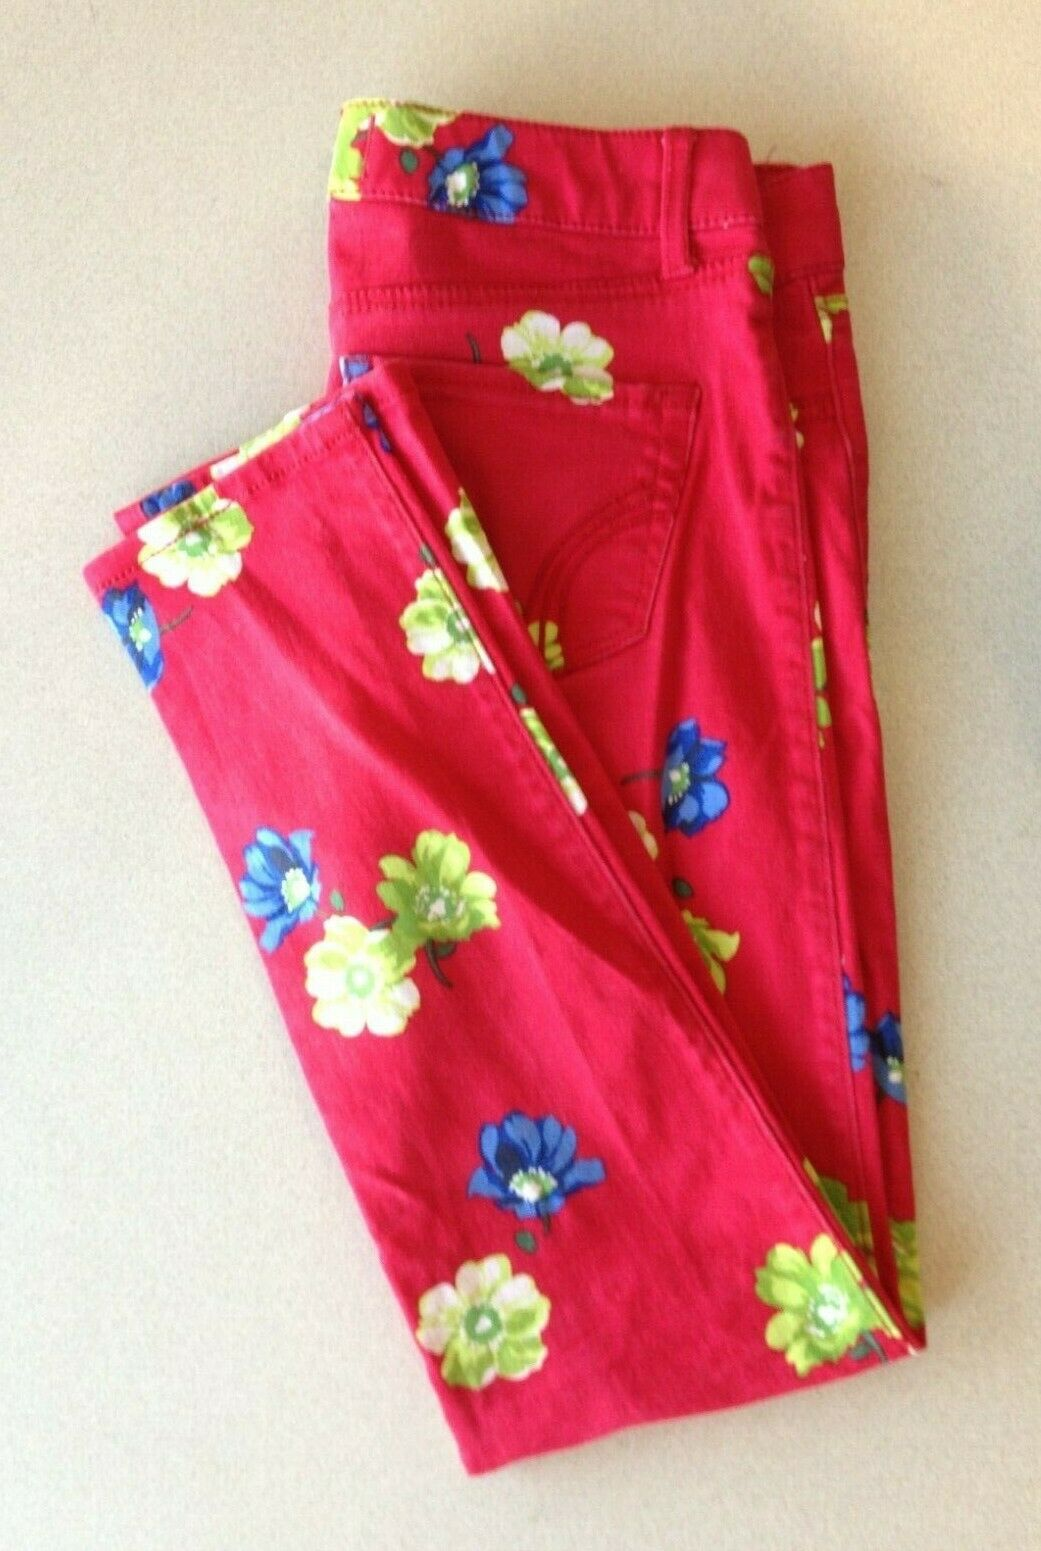 Hollister Women's Size 1 Red Floral Skinny Leg Low Rise Stretch Pocket Jeans